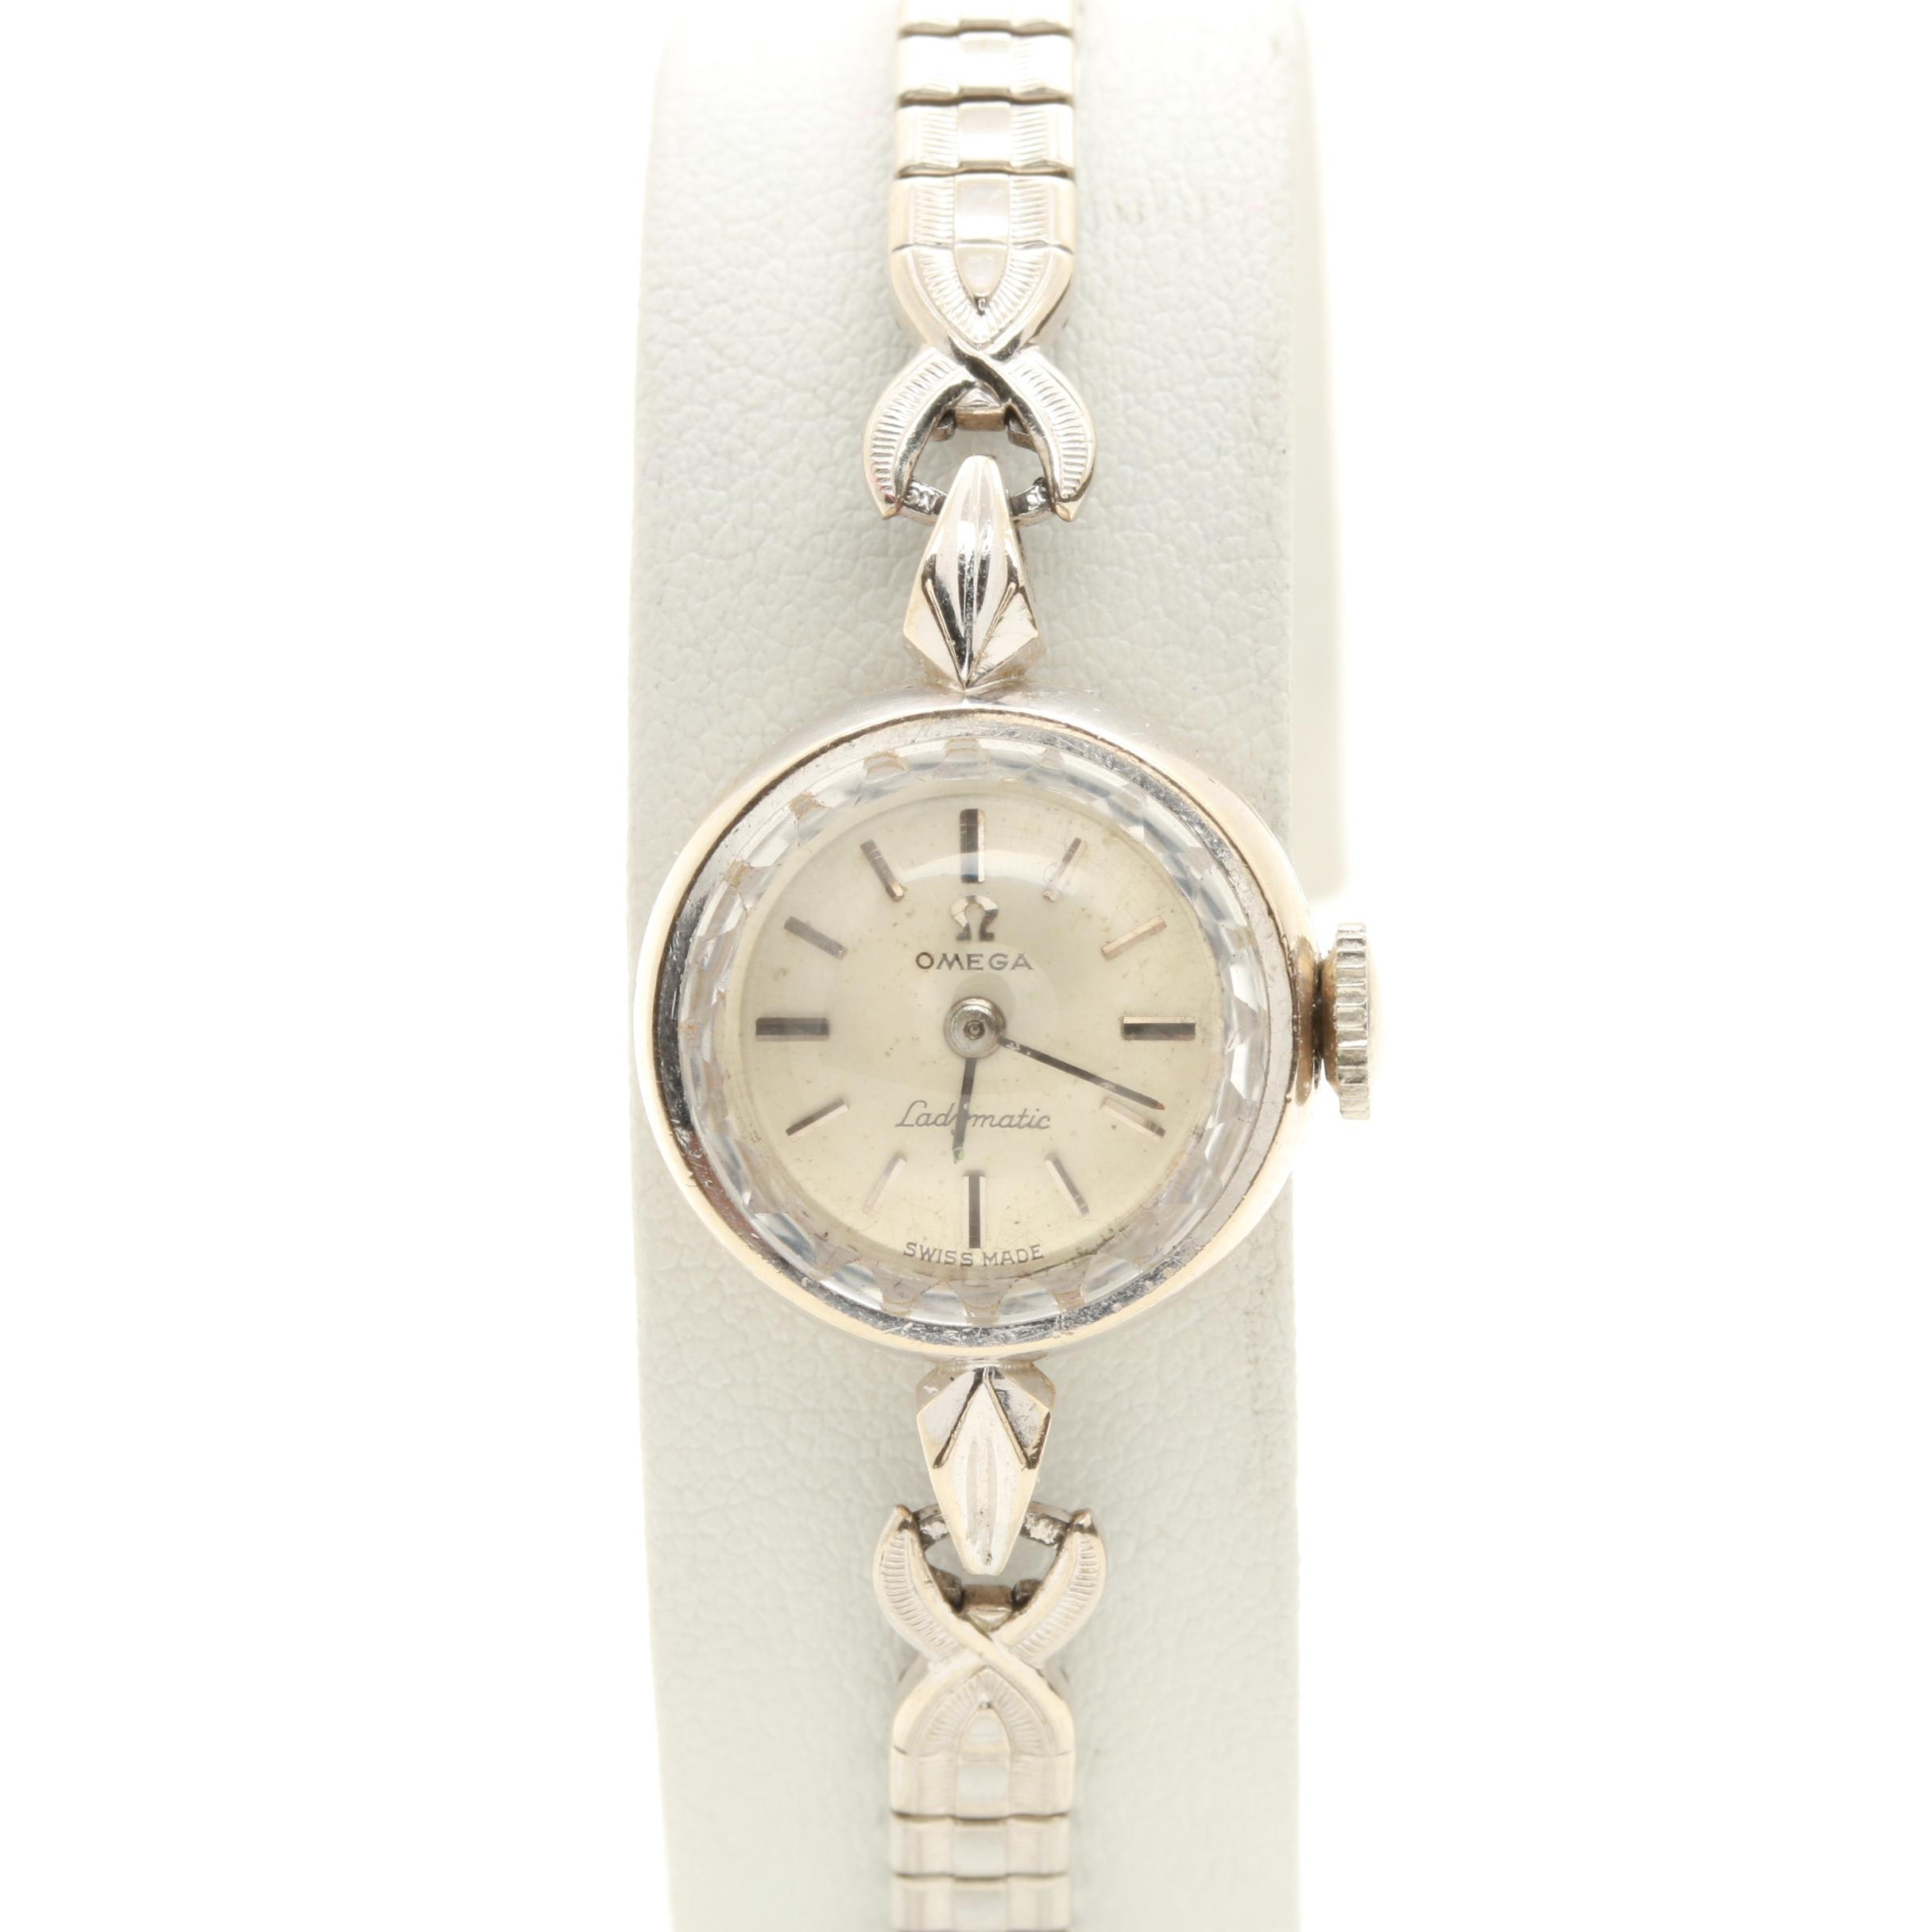 14K White Gold and Stainless Steel Omega Ladymatic Wristwatch